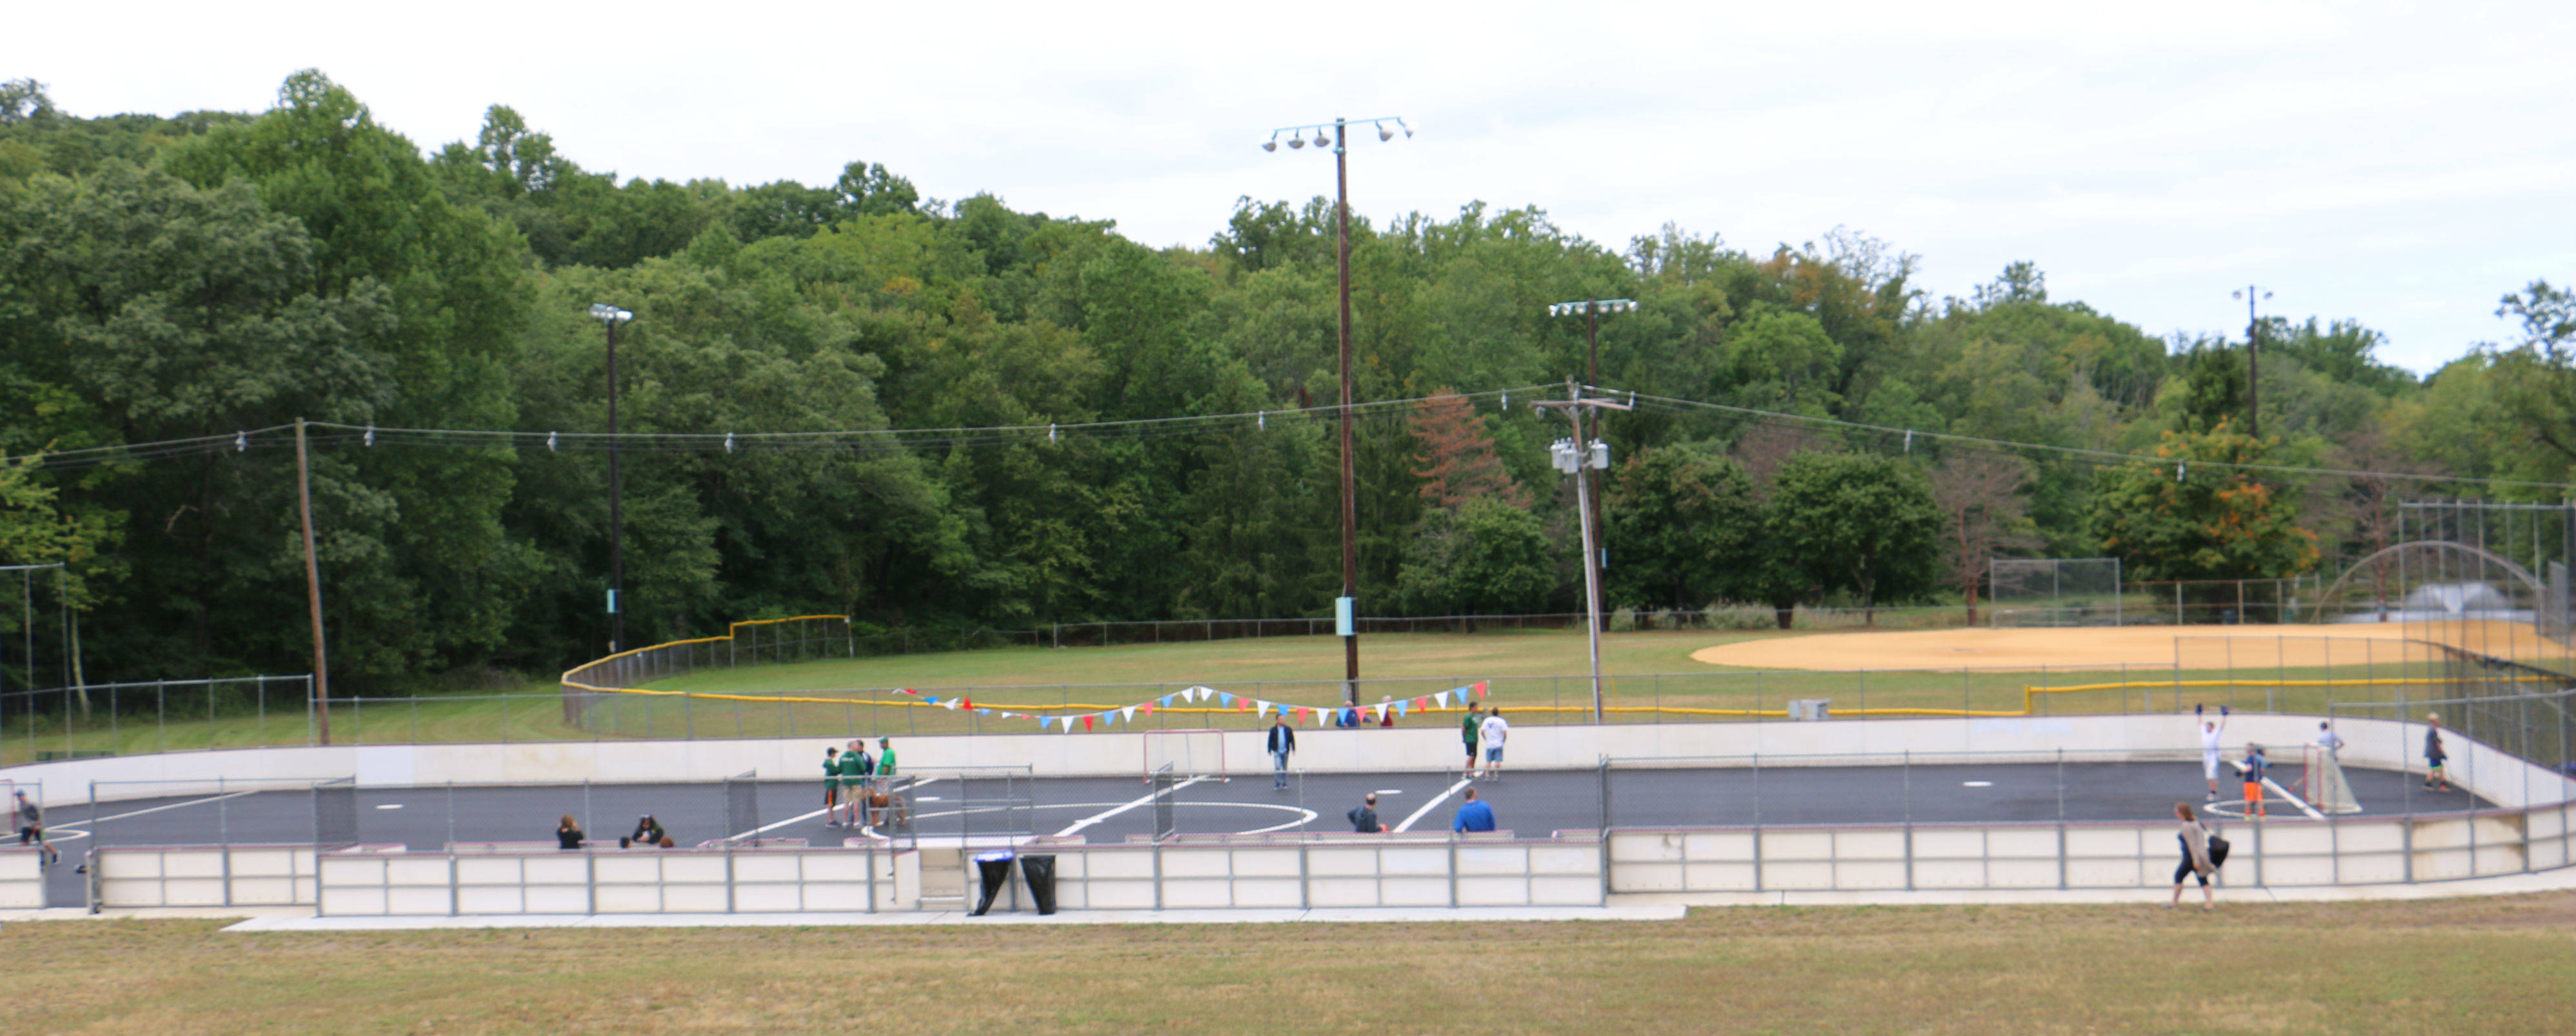 Roller skating rink kendall park nj - Montville Township S New Roller And Street Hockey Rink Located At Masar Park Officially Opened On Sept 24 Credits Hope White